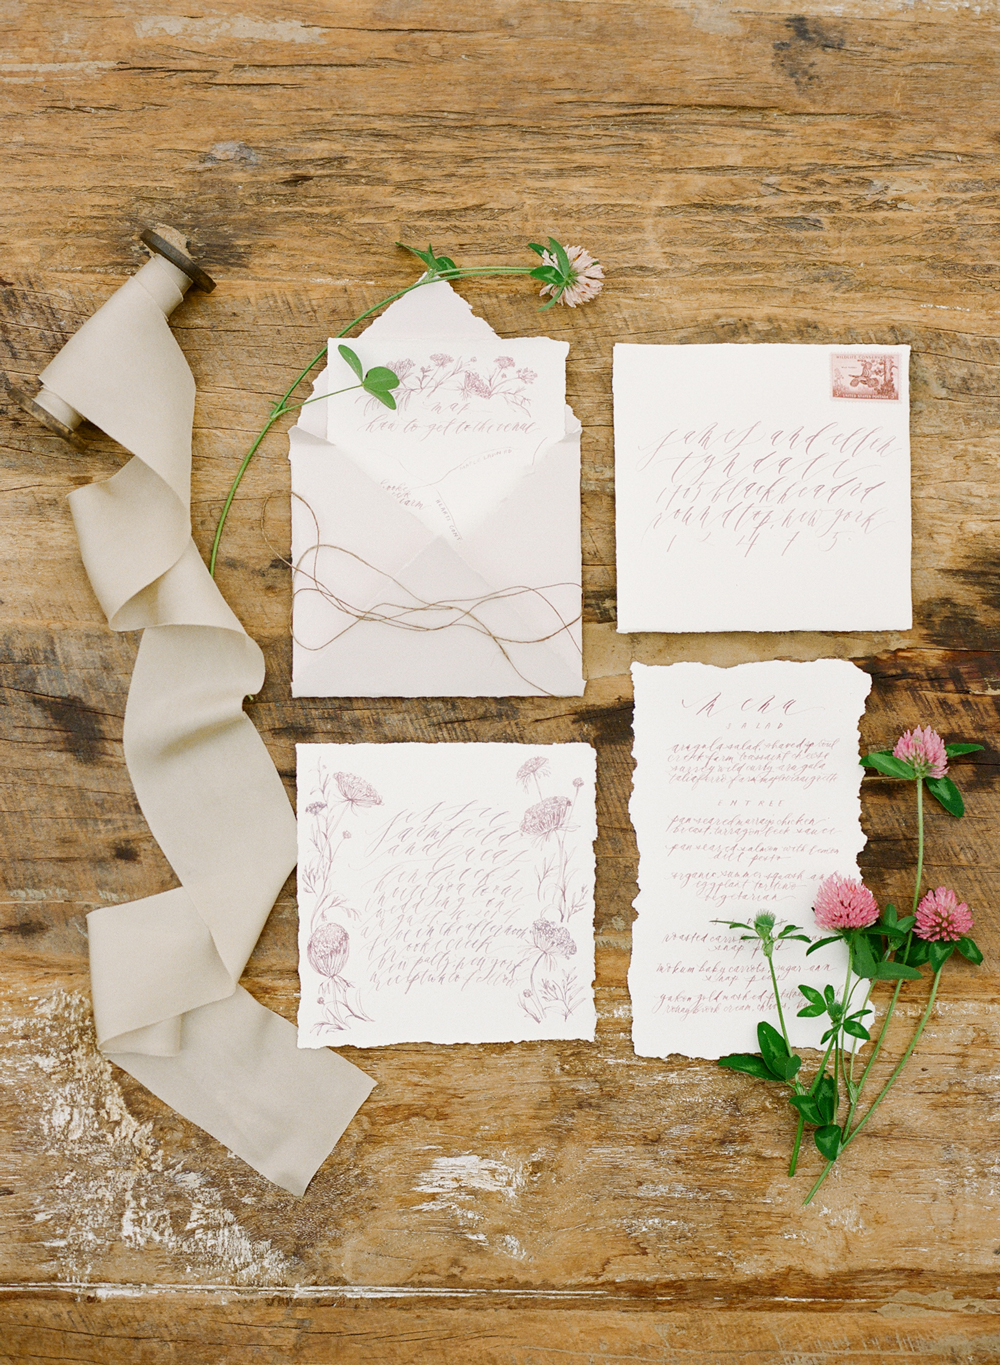 Deckle-Edged Invitations